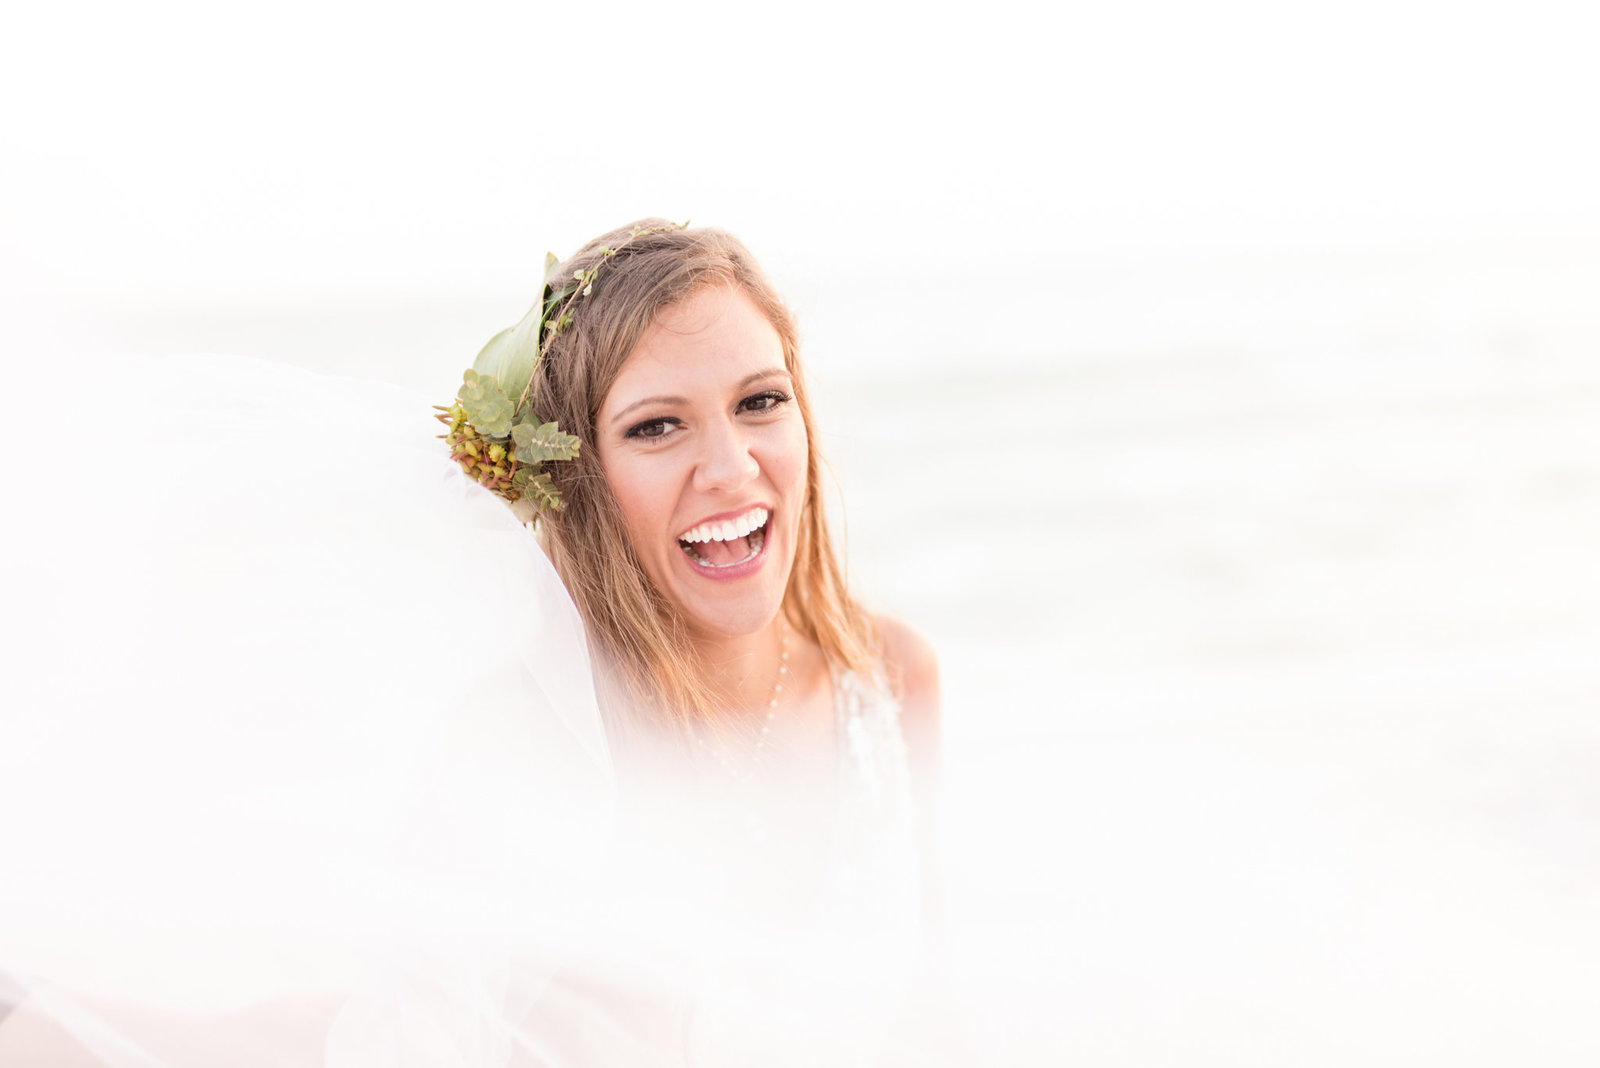 Tampa bride laughs while veil blows in front of her.